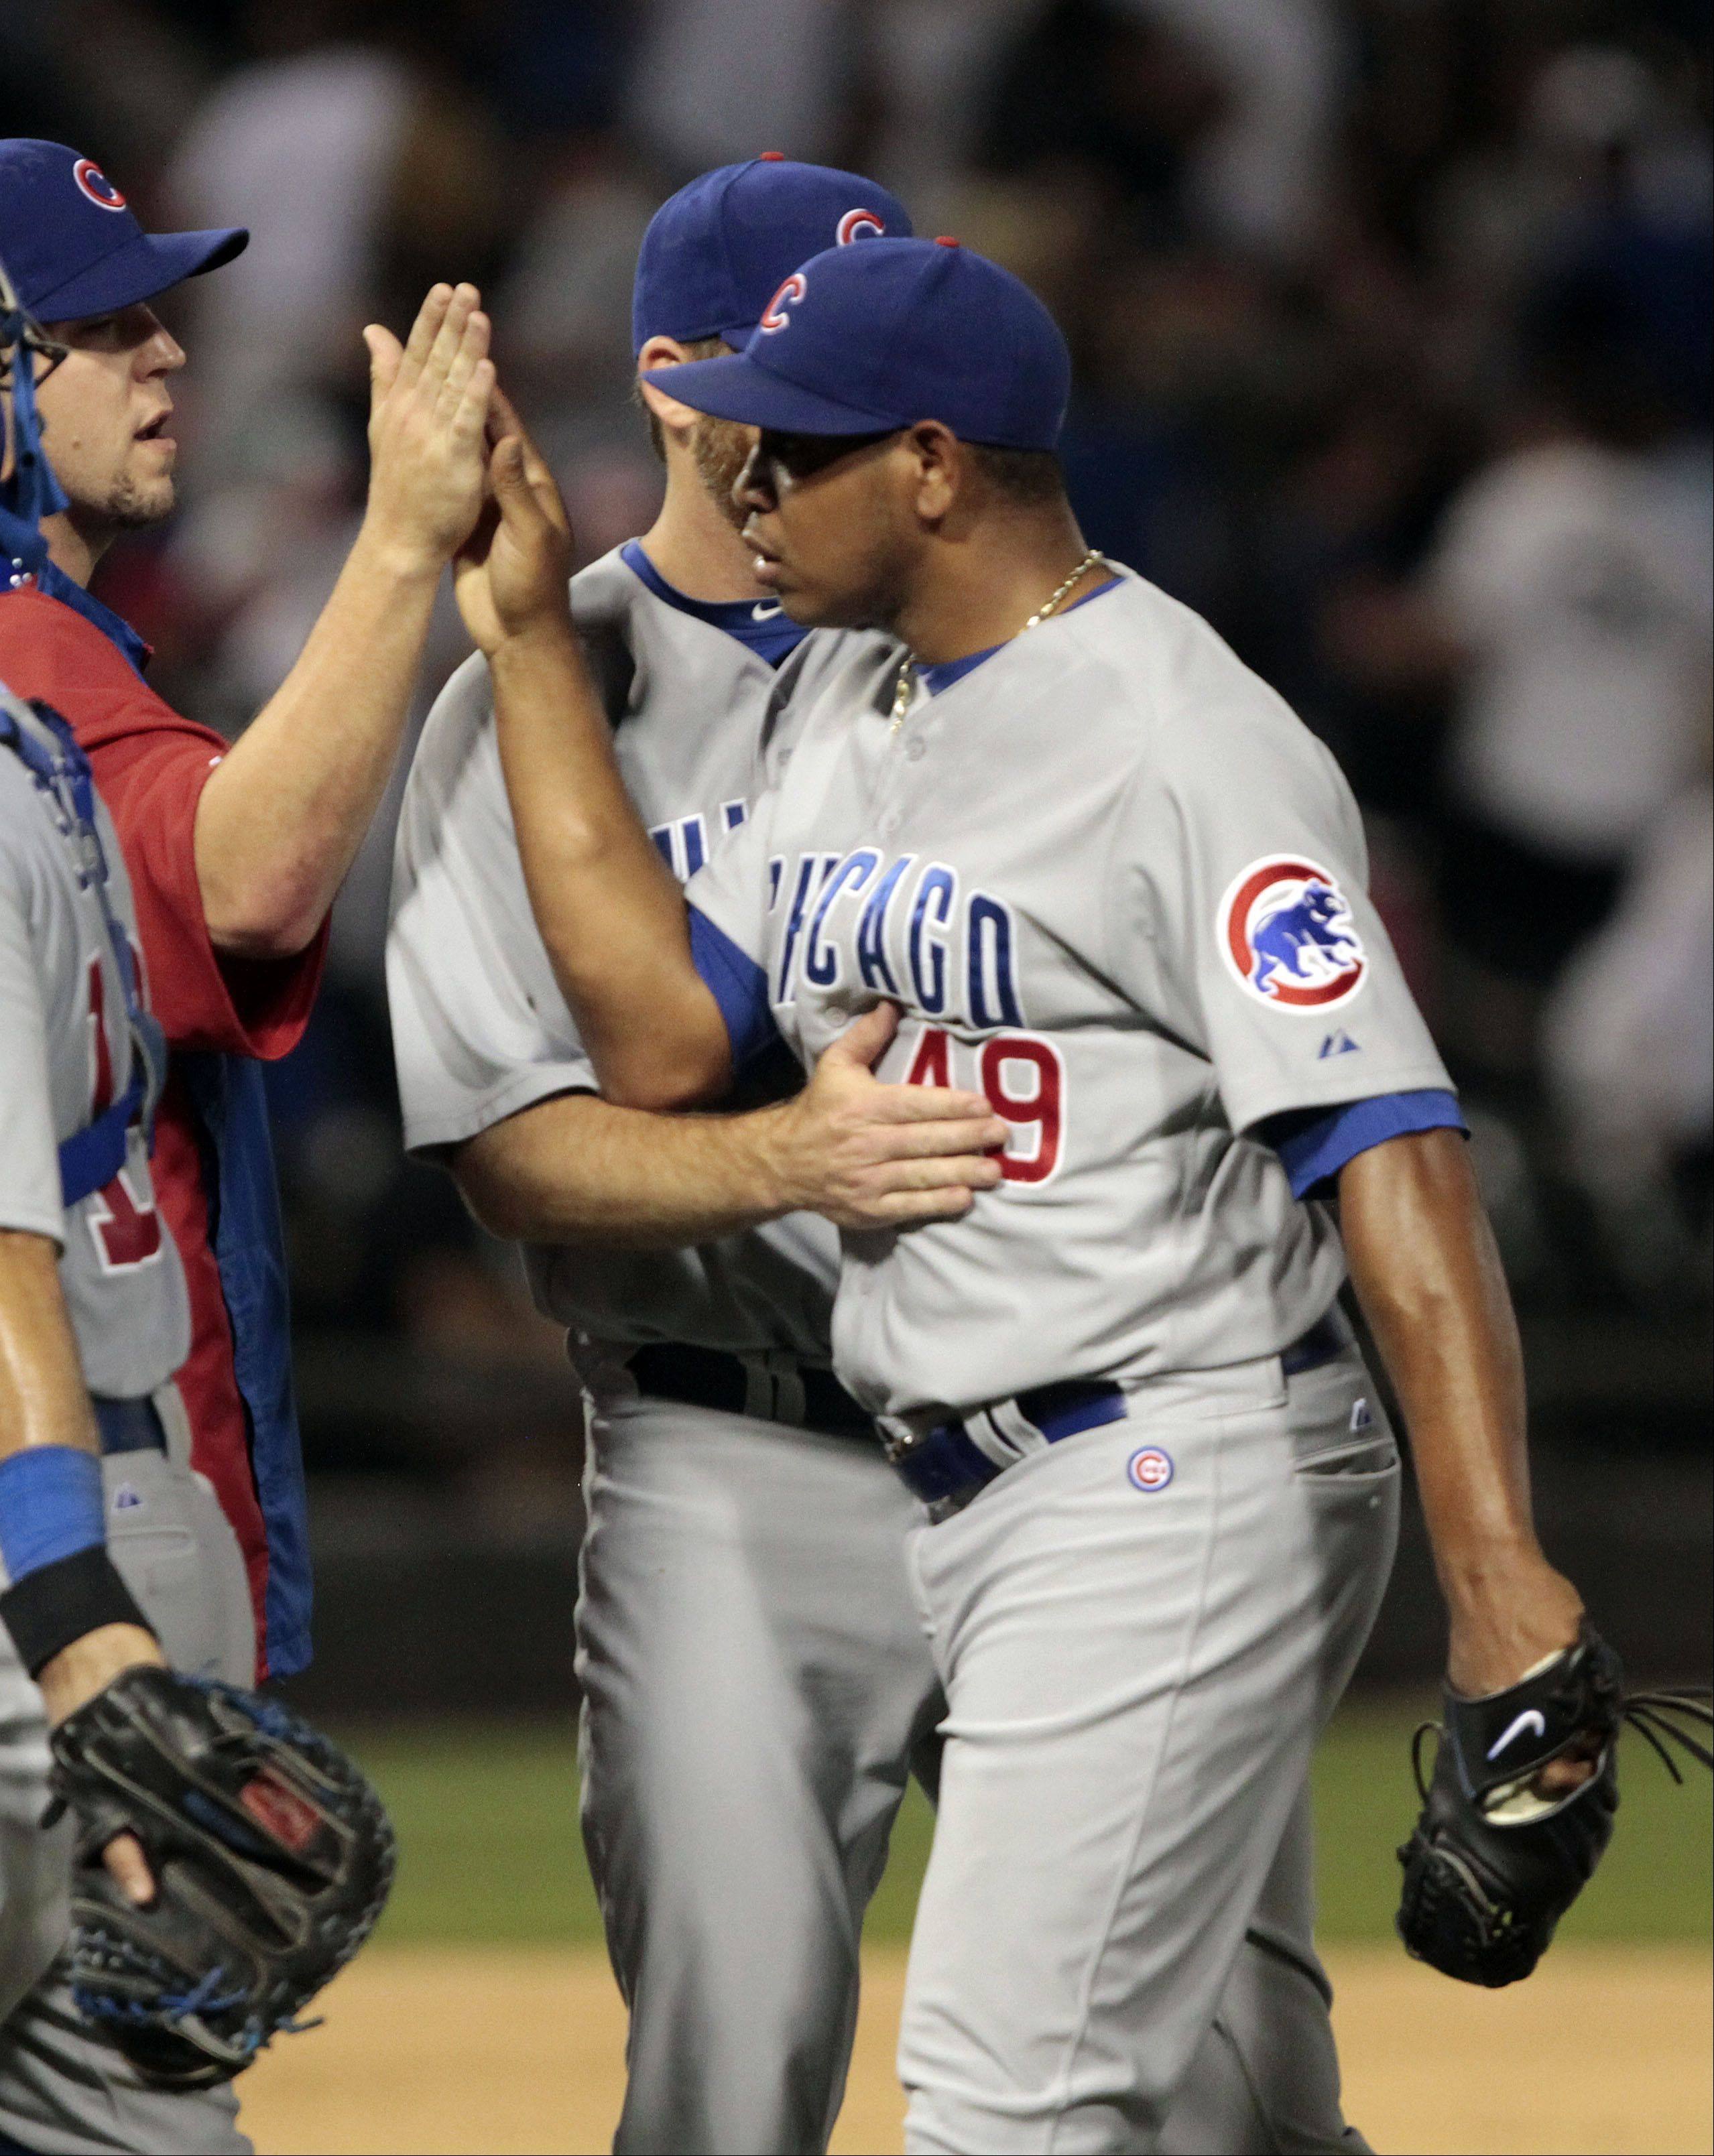 Chicago Cubs' Carlos Marmol celebrates after getting the save.